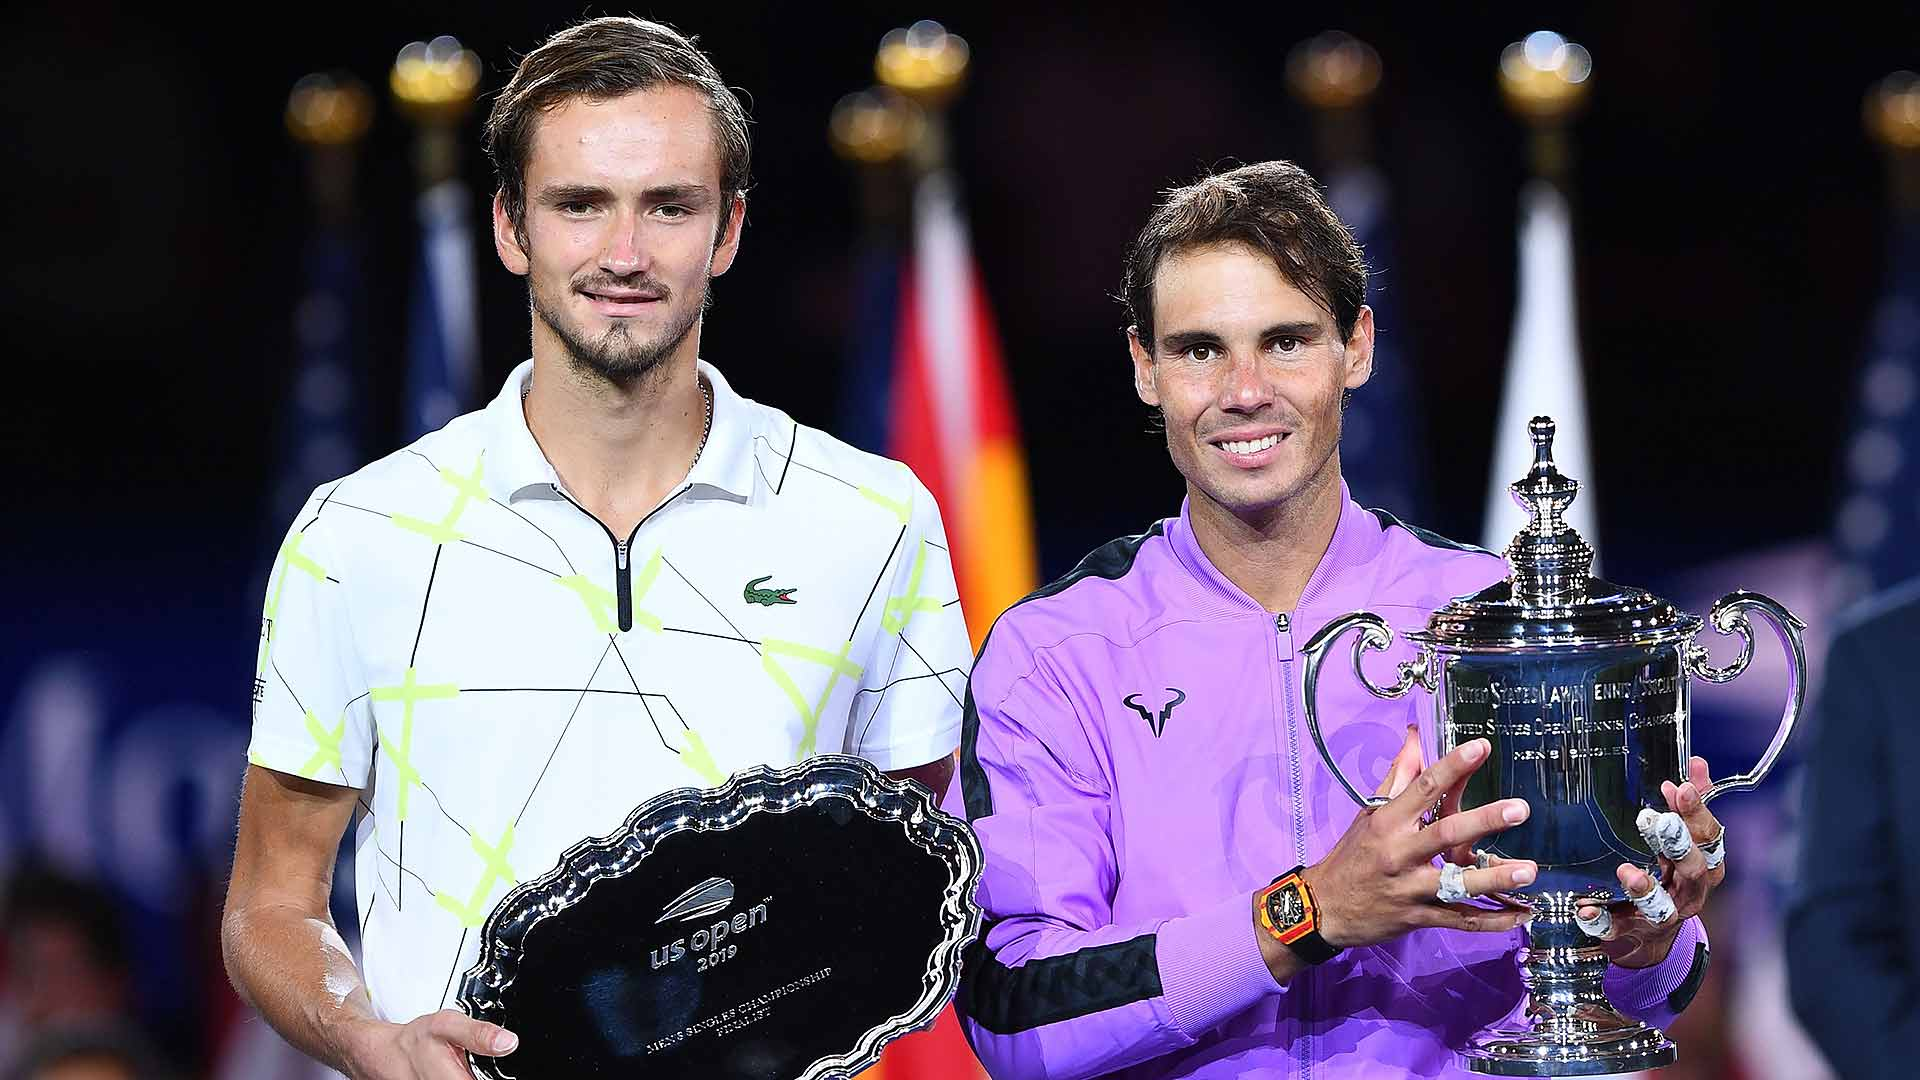 <a href='https://www.atptour.com/en/players/daniil-medvedev/mm58/overview'>Daniil Medvedev</a> and <a href='https://www.atptour.com/en/players/rafael-nadal/n409/overview'>Rafael Nadal</a> helped the <a href='https://www.atptour.com/en/tournaments/us-open/560/overview'>US Open</a> set a new attendance record this year.